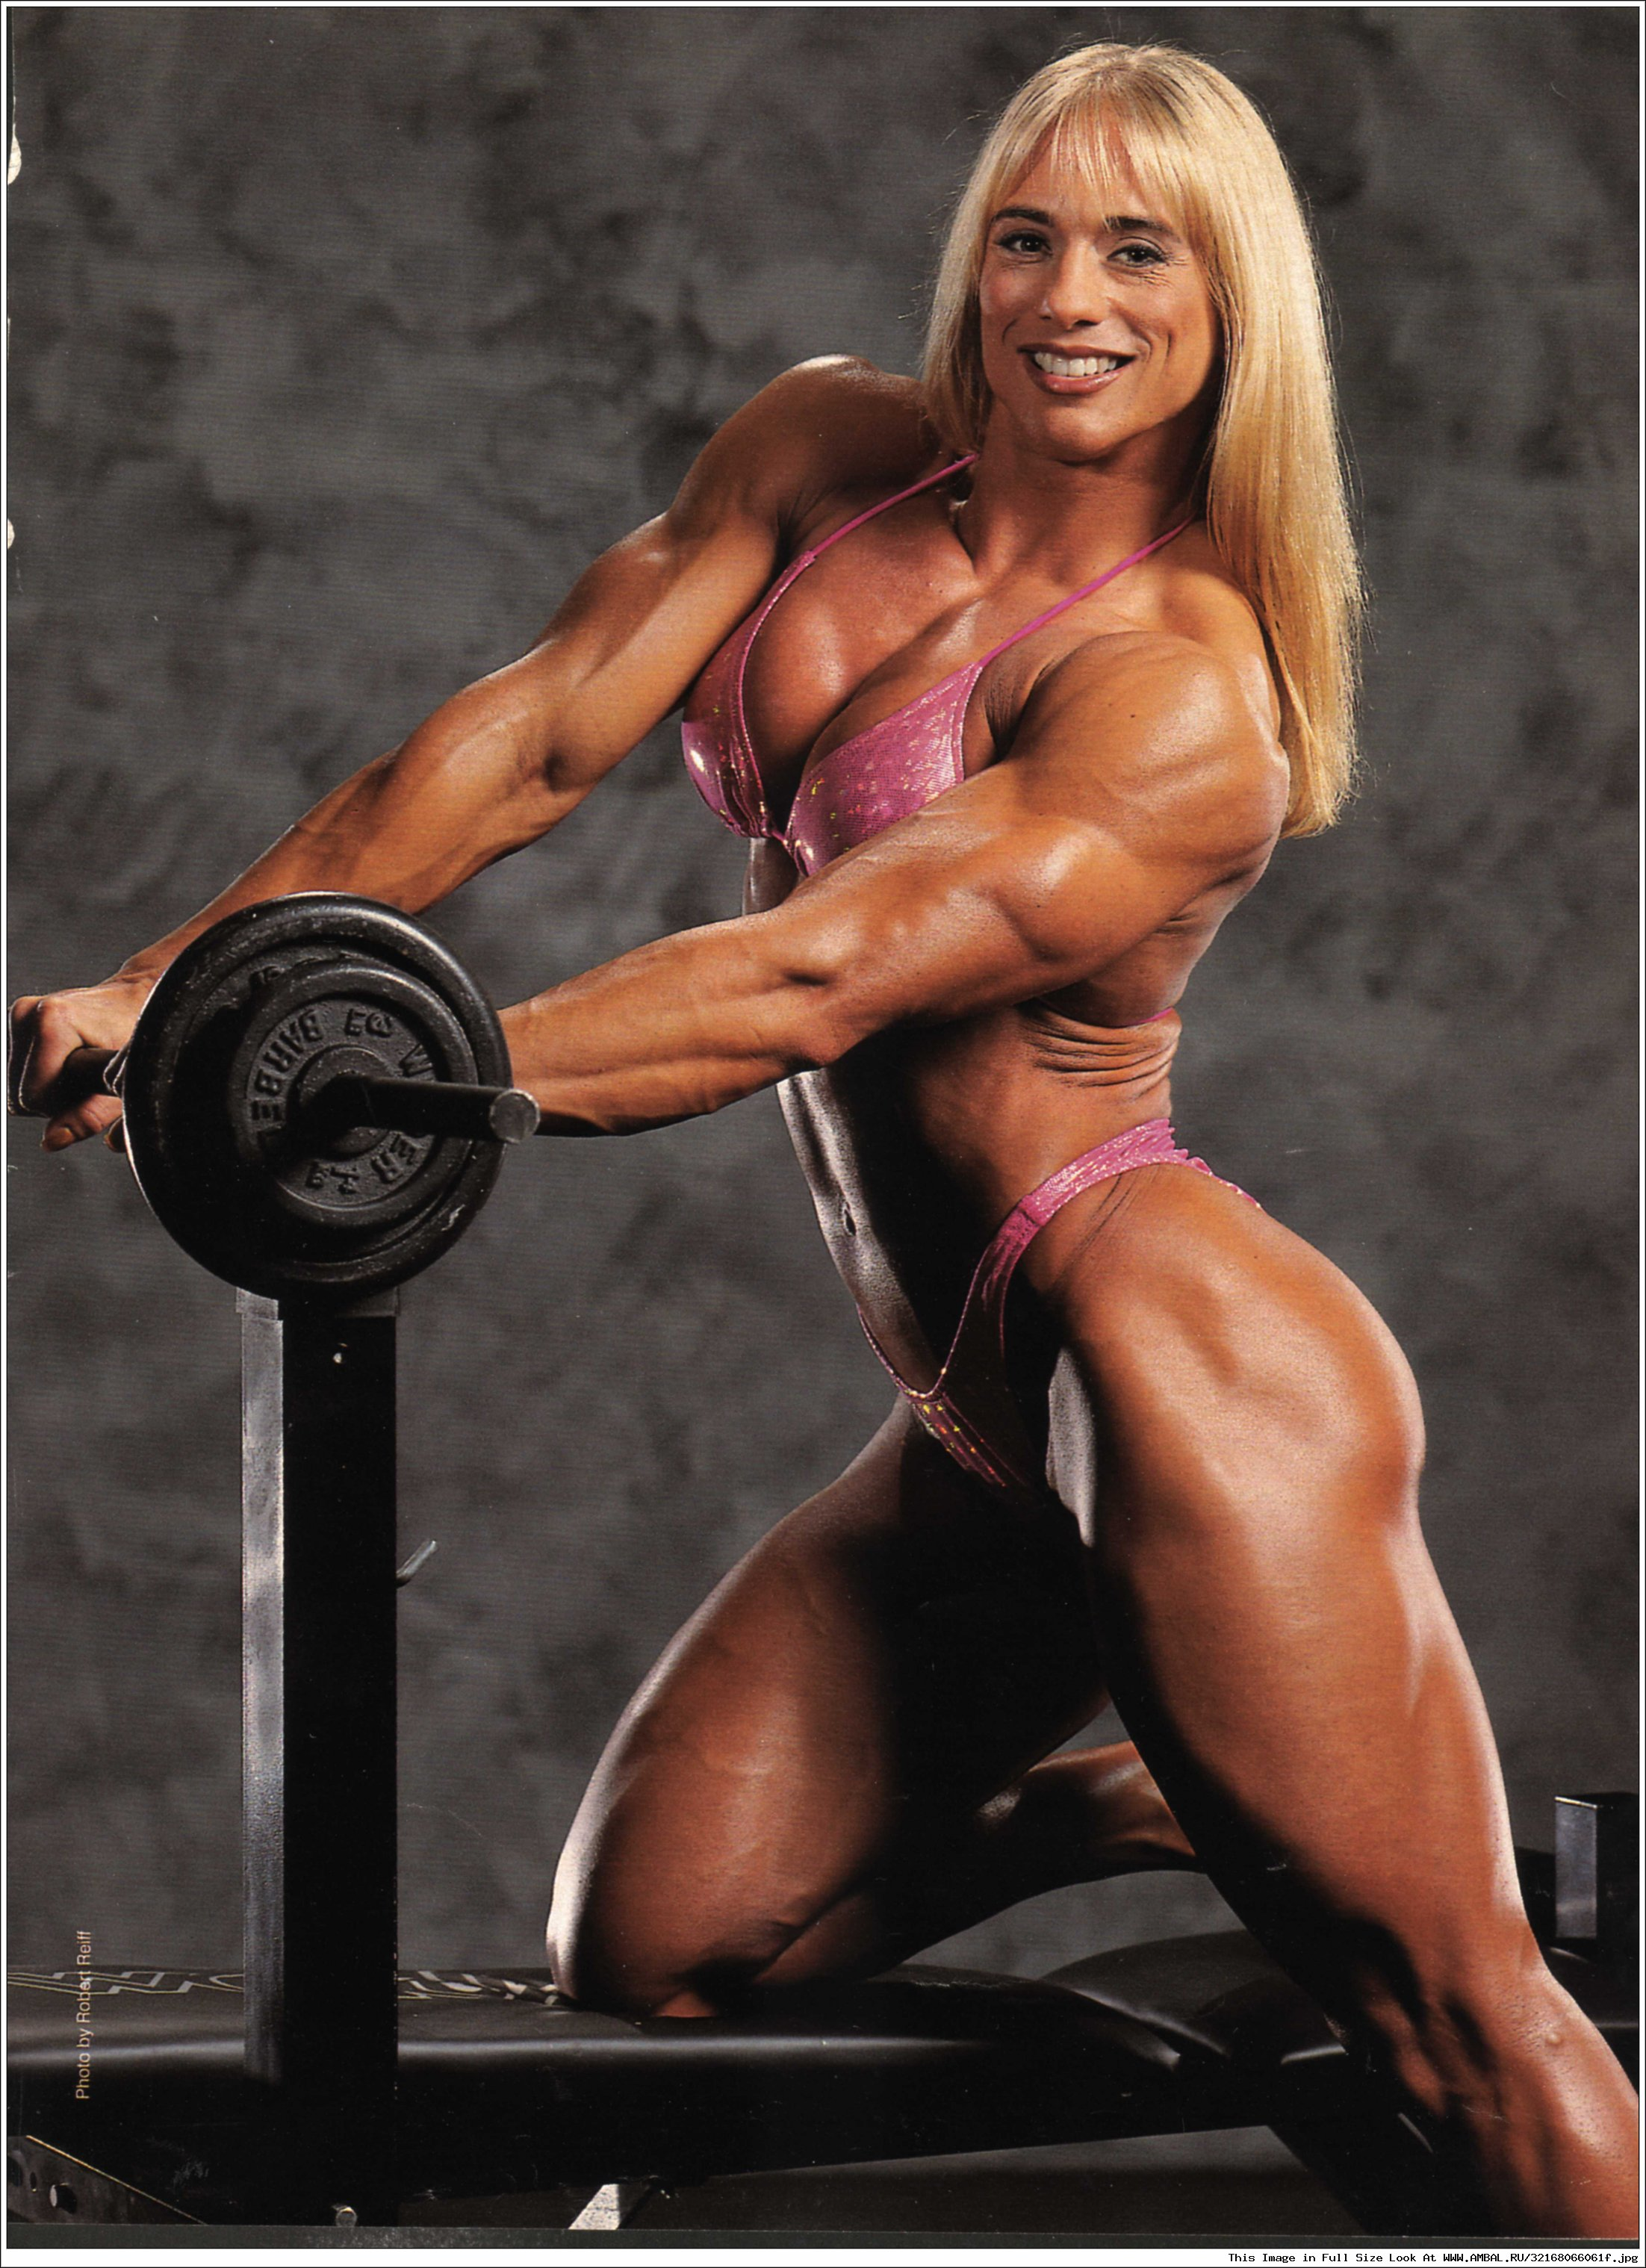 Muscle woman sexy free pic nude pic